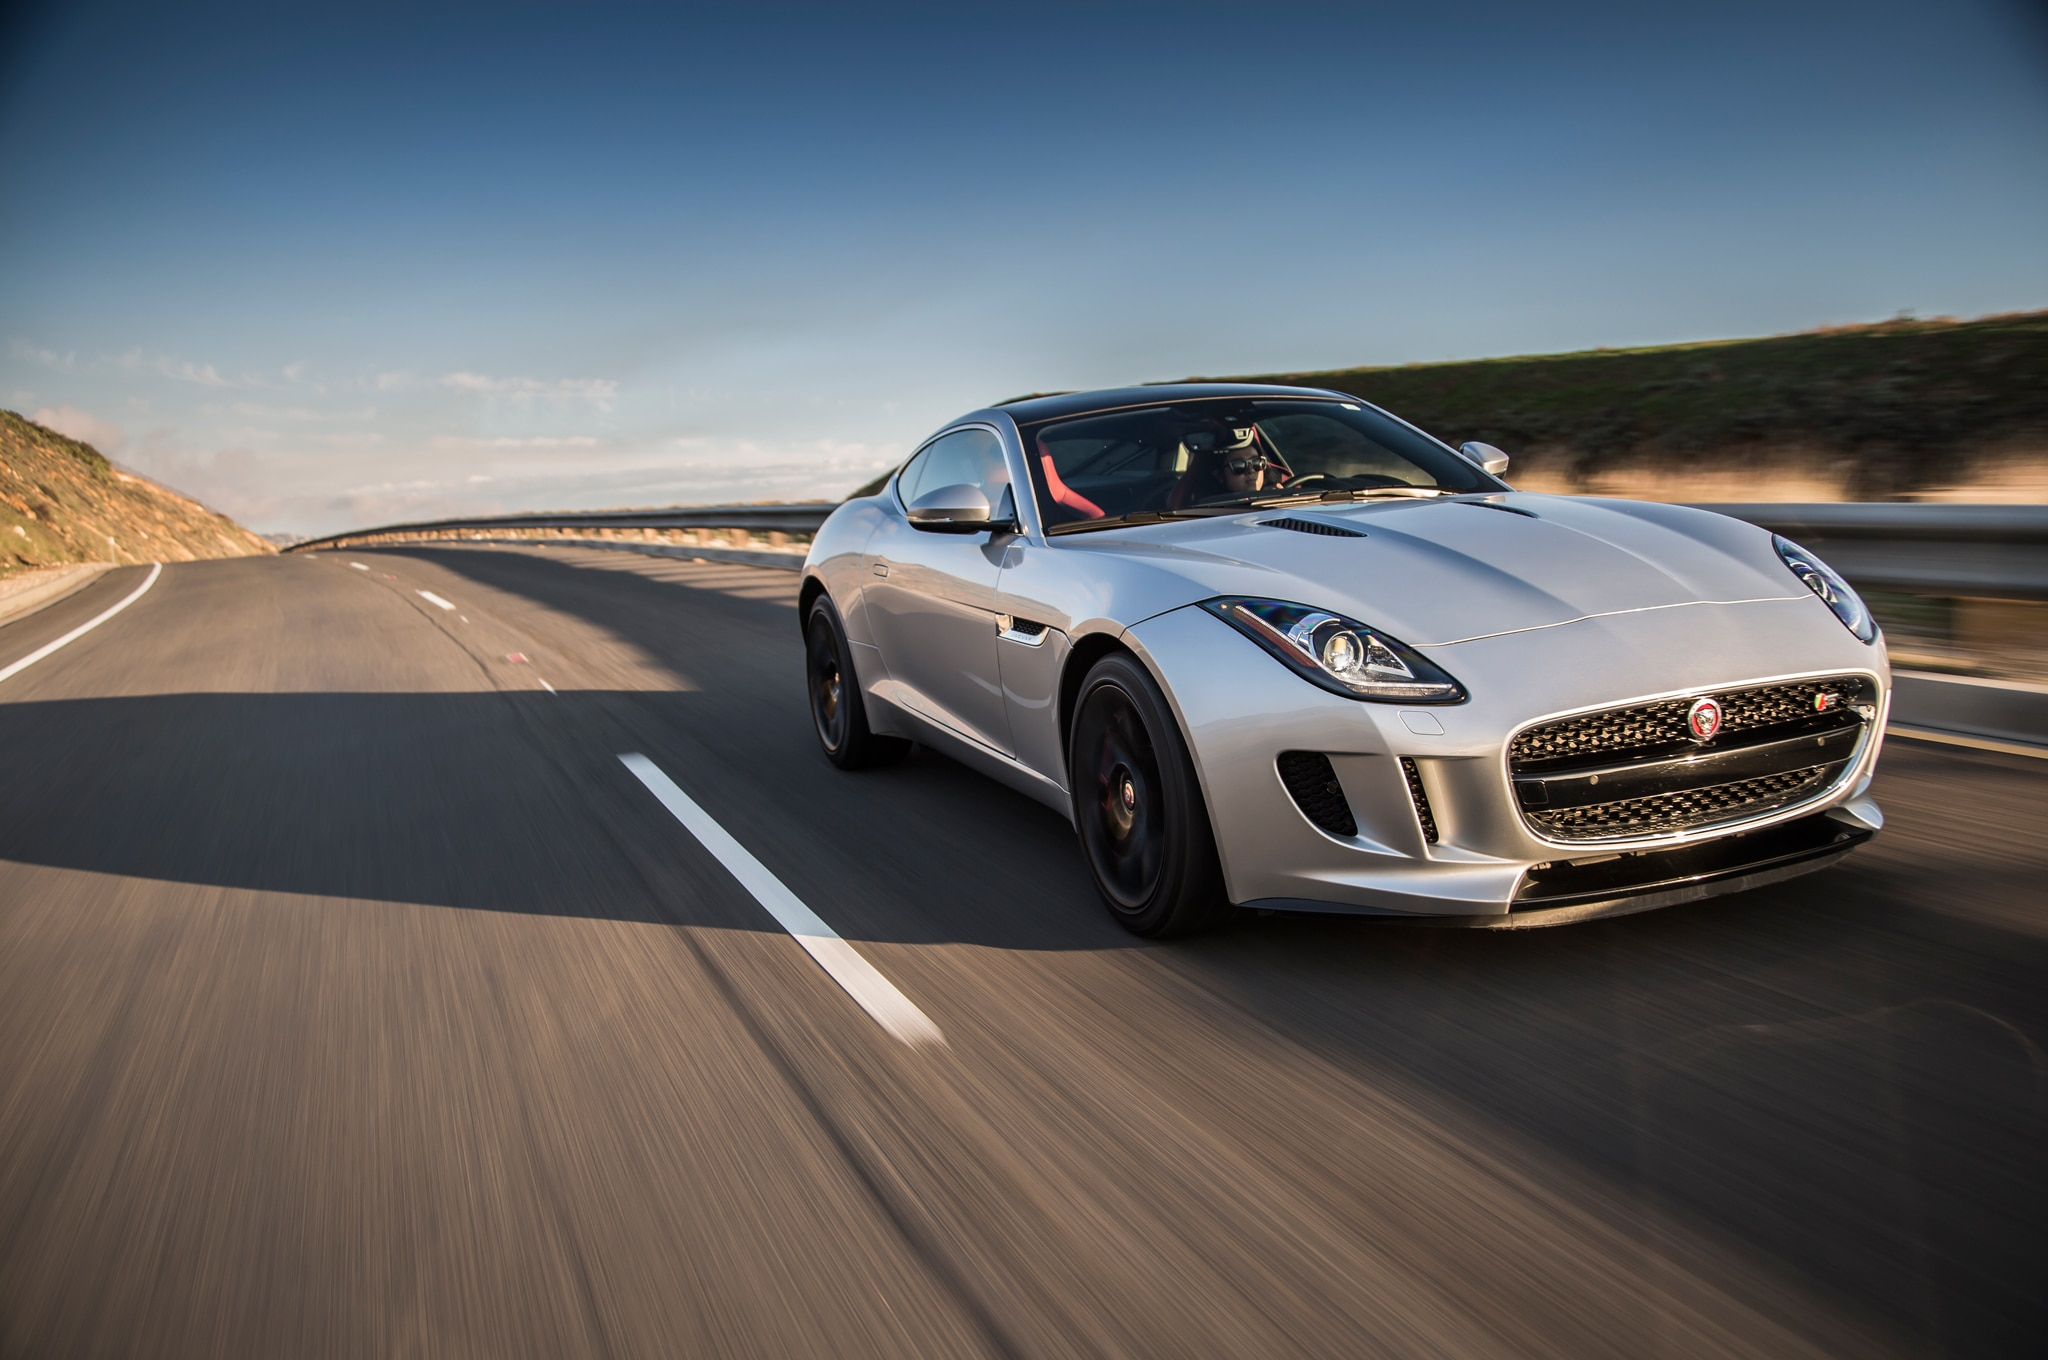 2015 jaguar f type s coupe services scheduled and otherwise. Black Bedroom Furniture Sets. Home Design Ideas